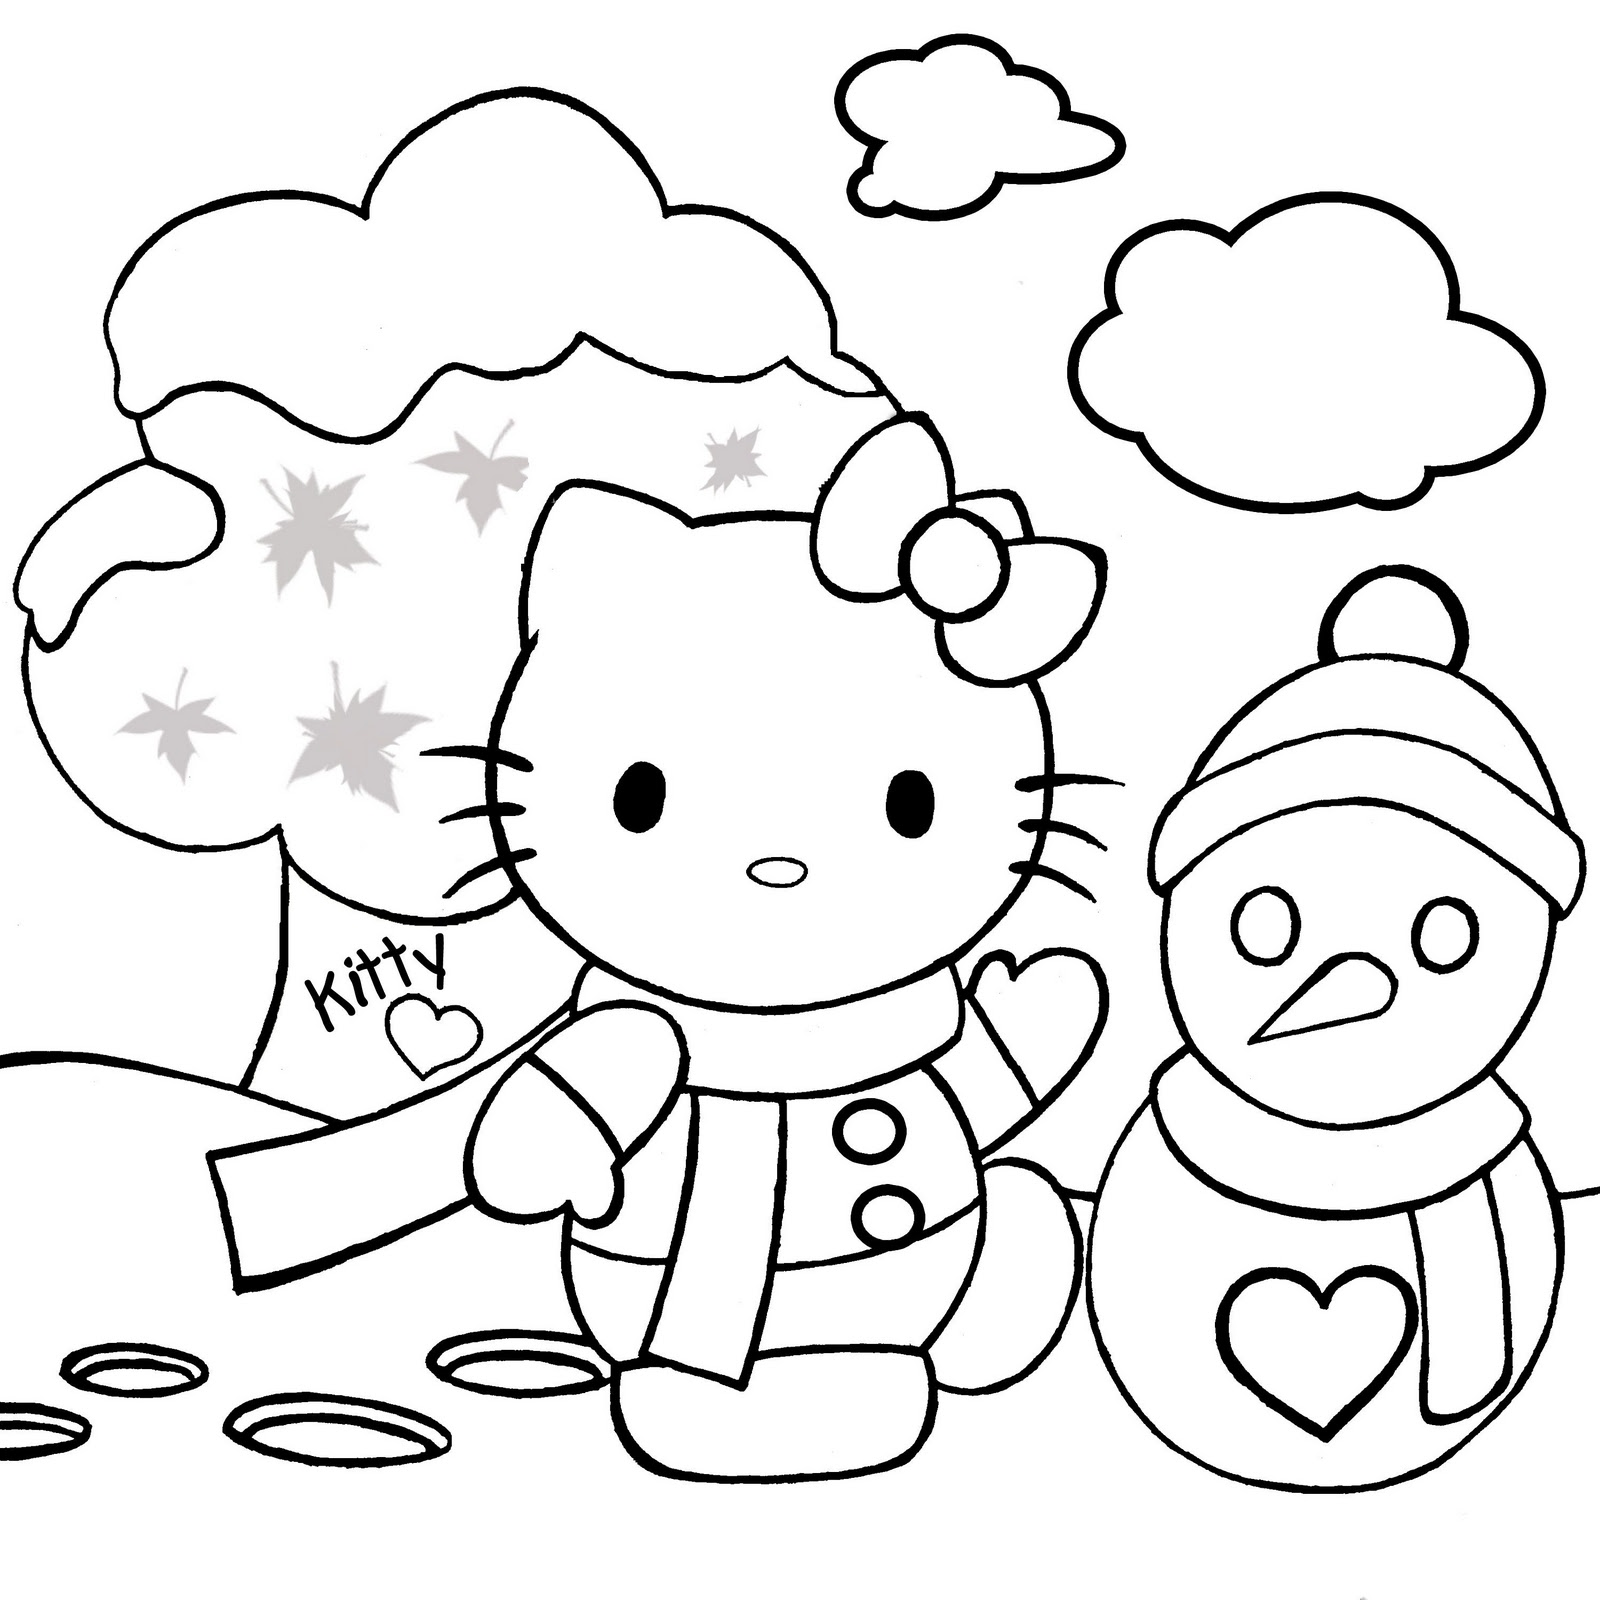 children christmas coloring pages - photo#32